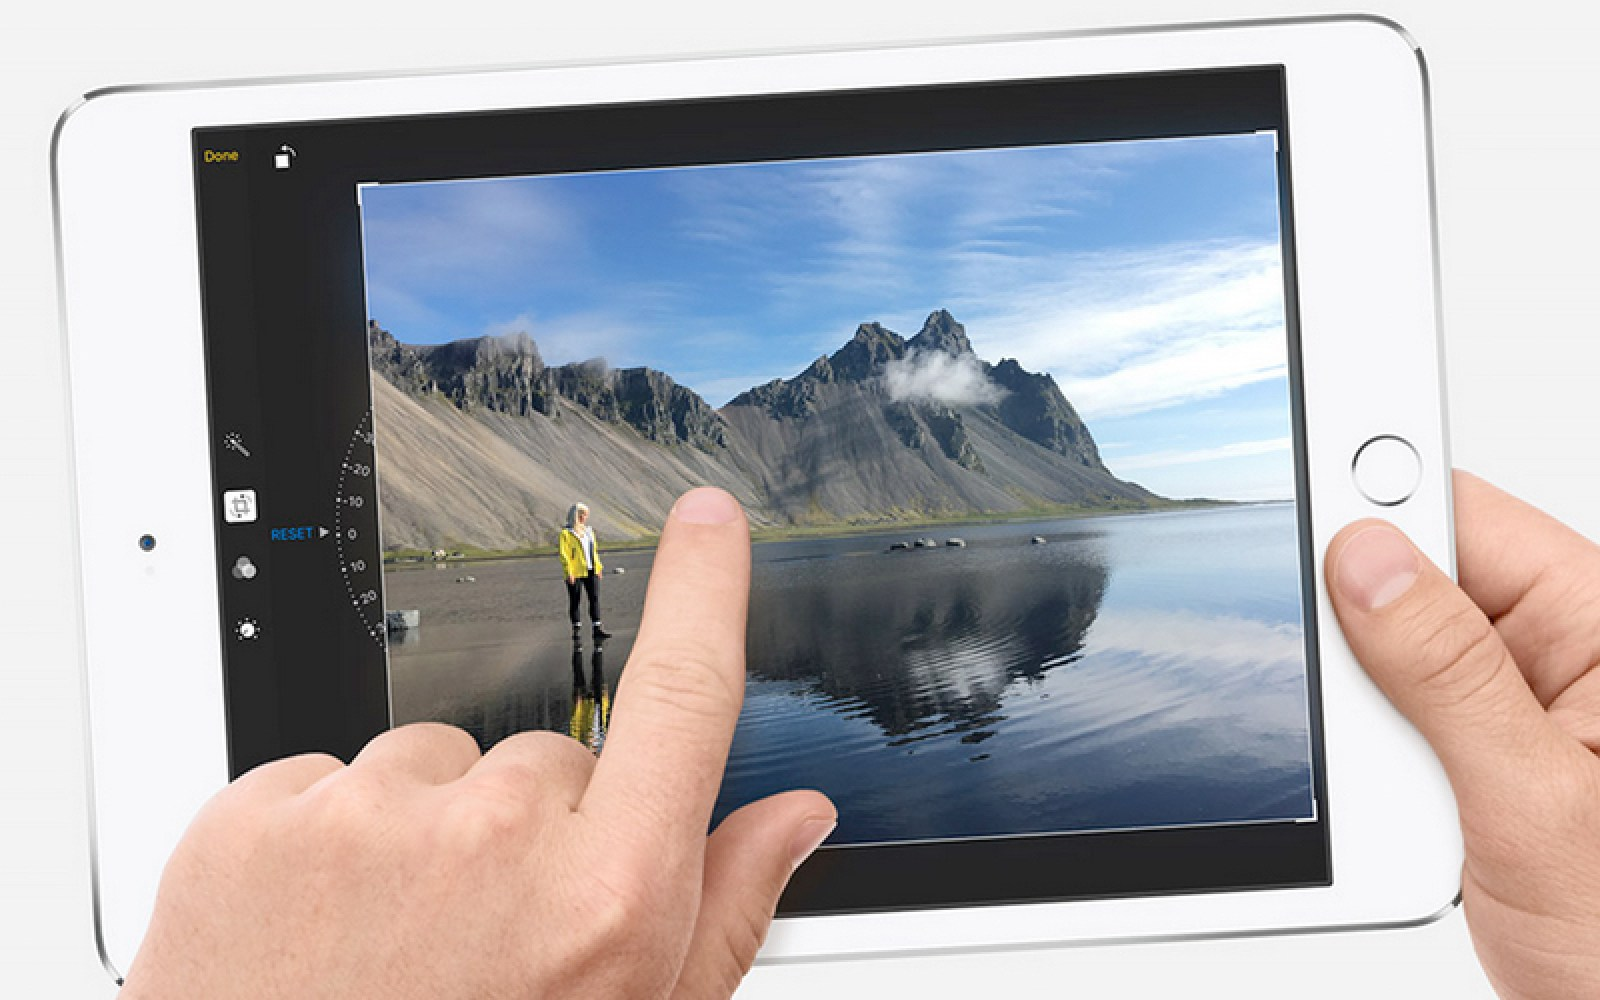 iPad mini 4 is one of Apple's best tablet displays yet in real-world viewing conditions